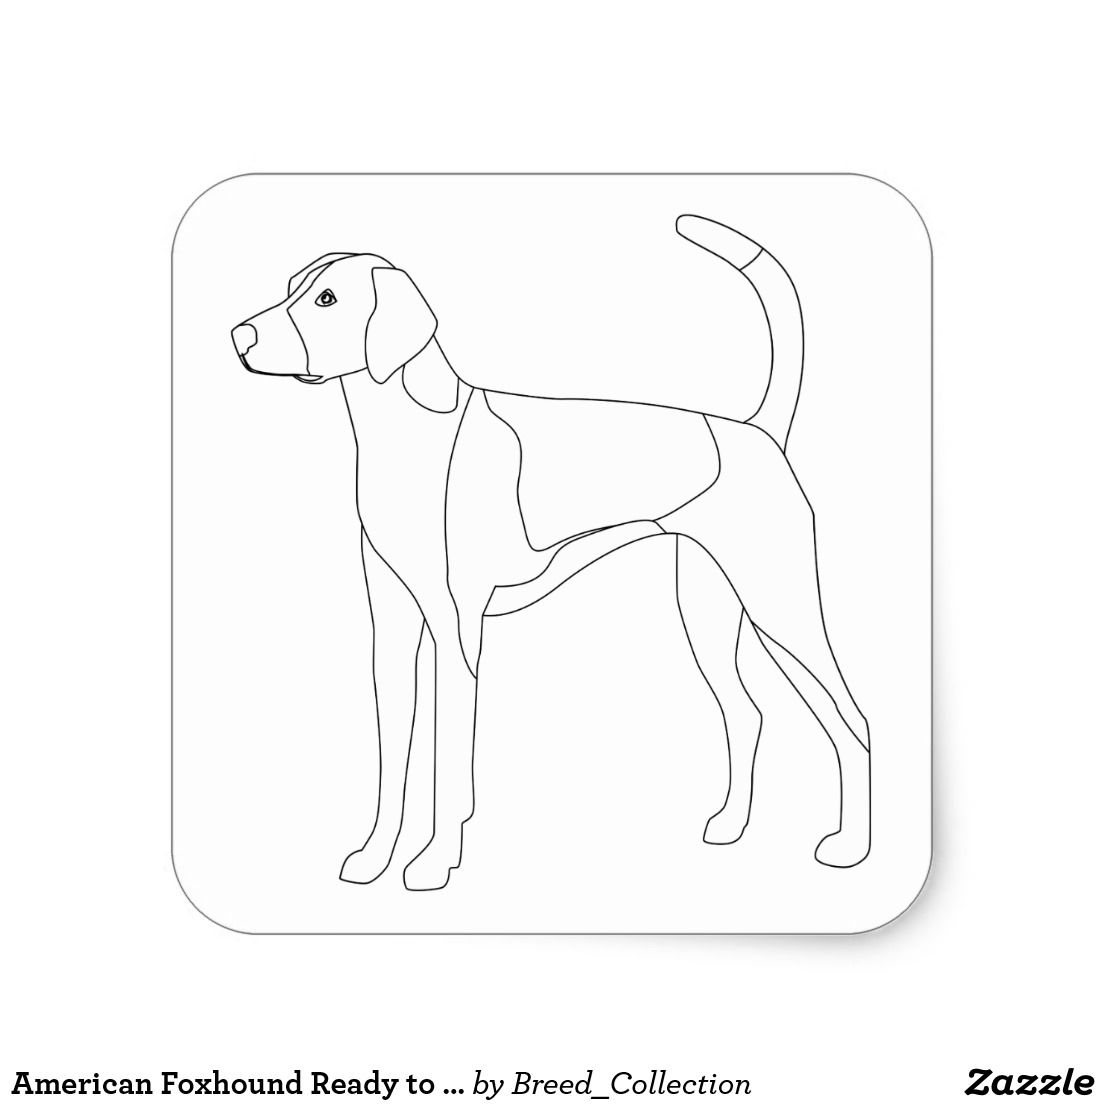 American Foxhound Ready To Color And Customize Square Sticker Zazzle Com The Fox And The Hound American Foxhound Animal Drawings